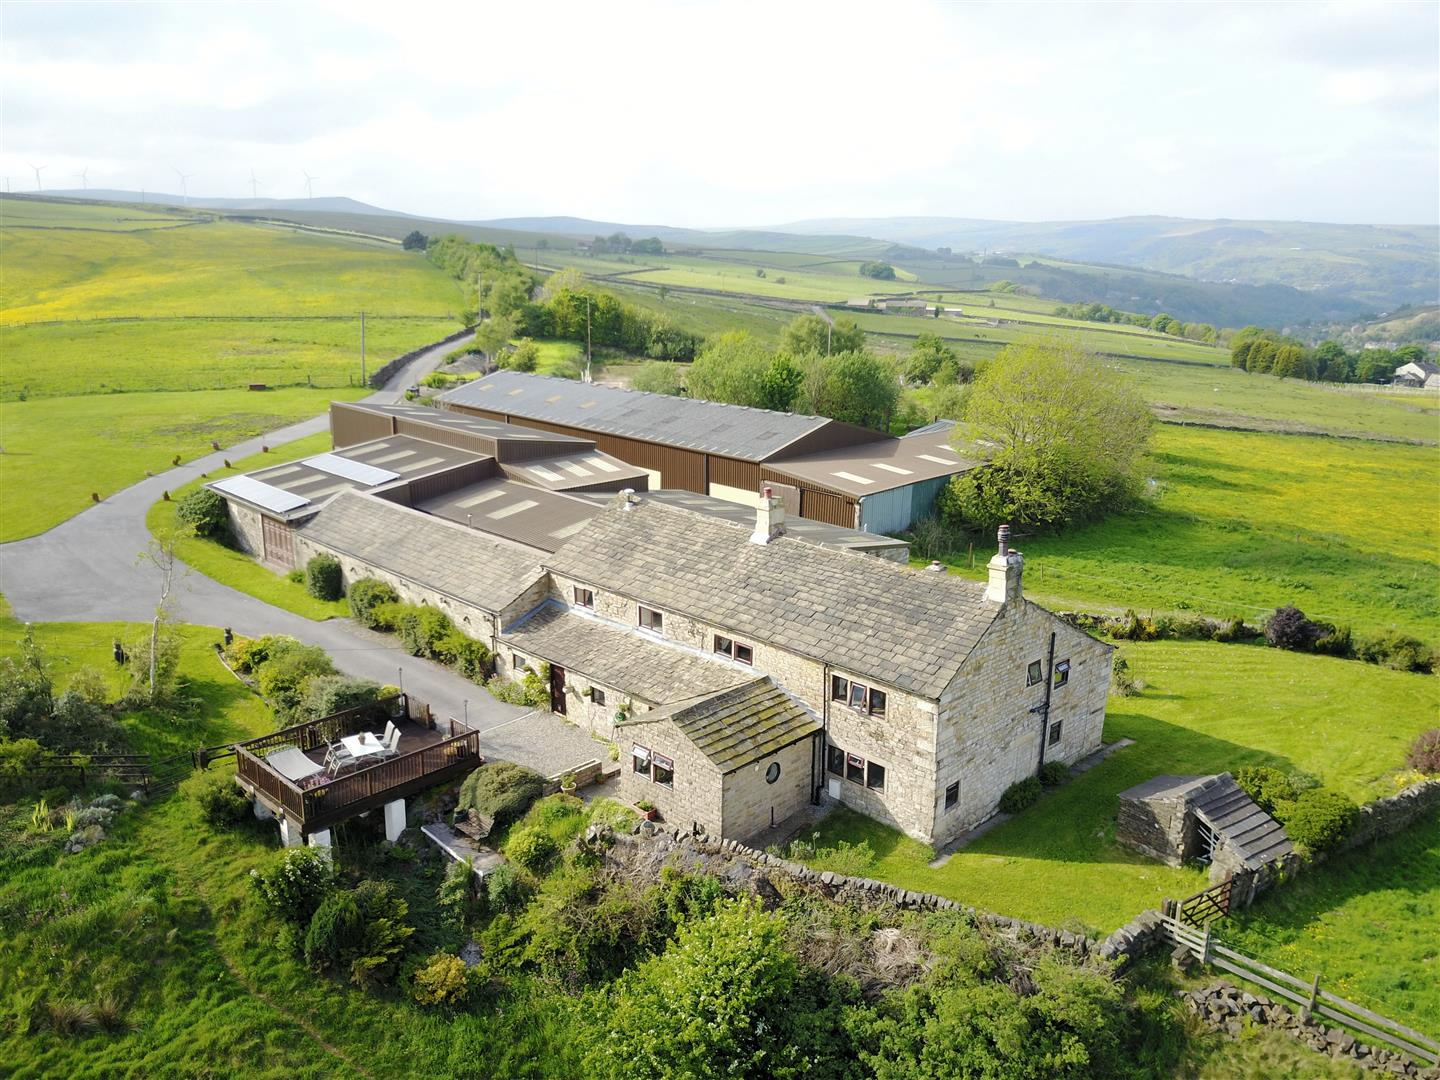 Height House Farm, Inchfield Road, Walsden, OL14 7QP